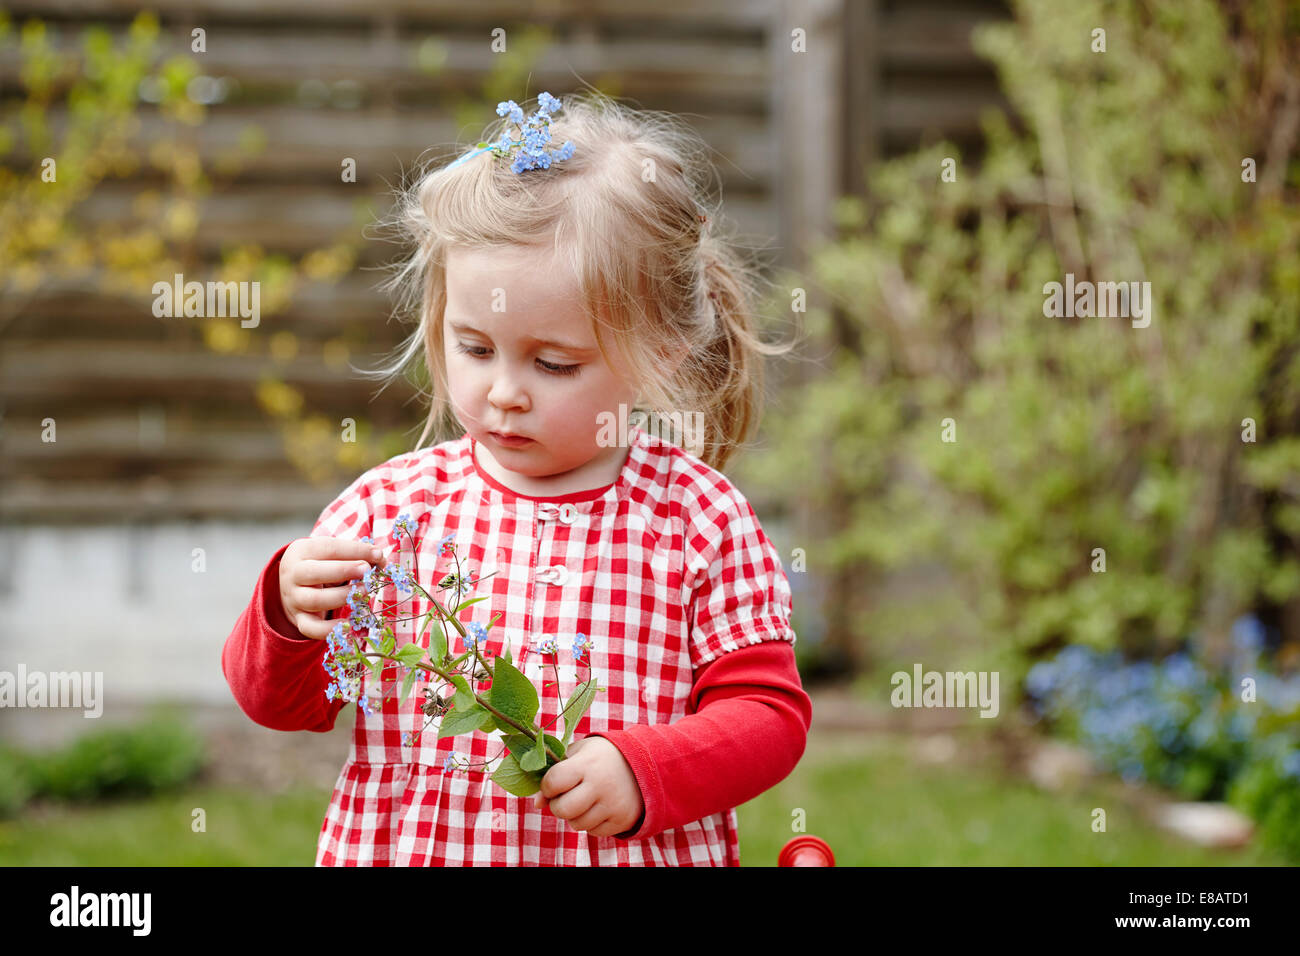 Young girl wearing gingham dress holding flowers - Stock Image